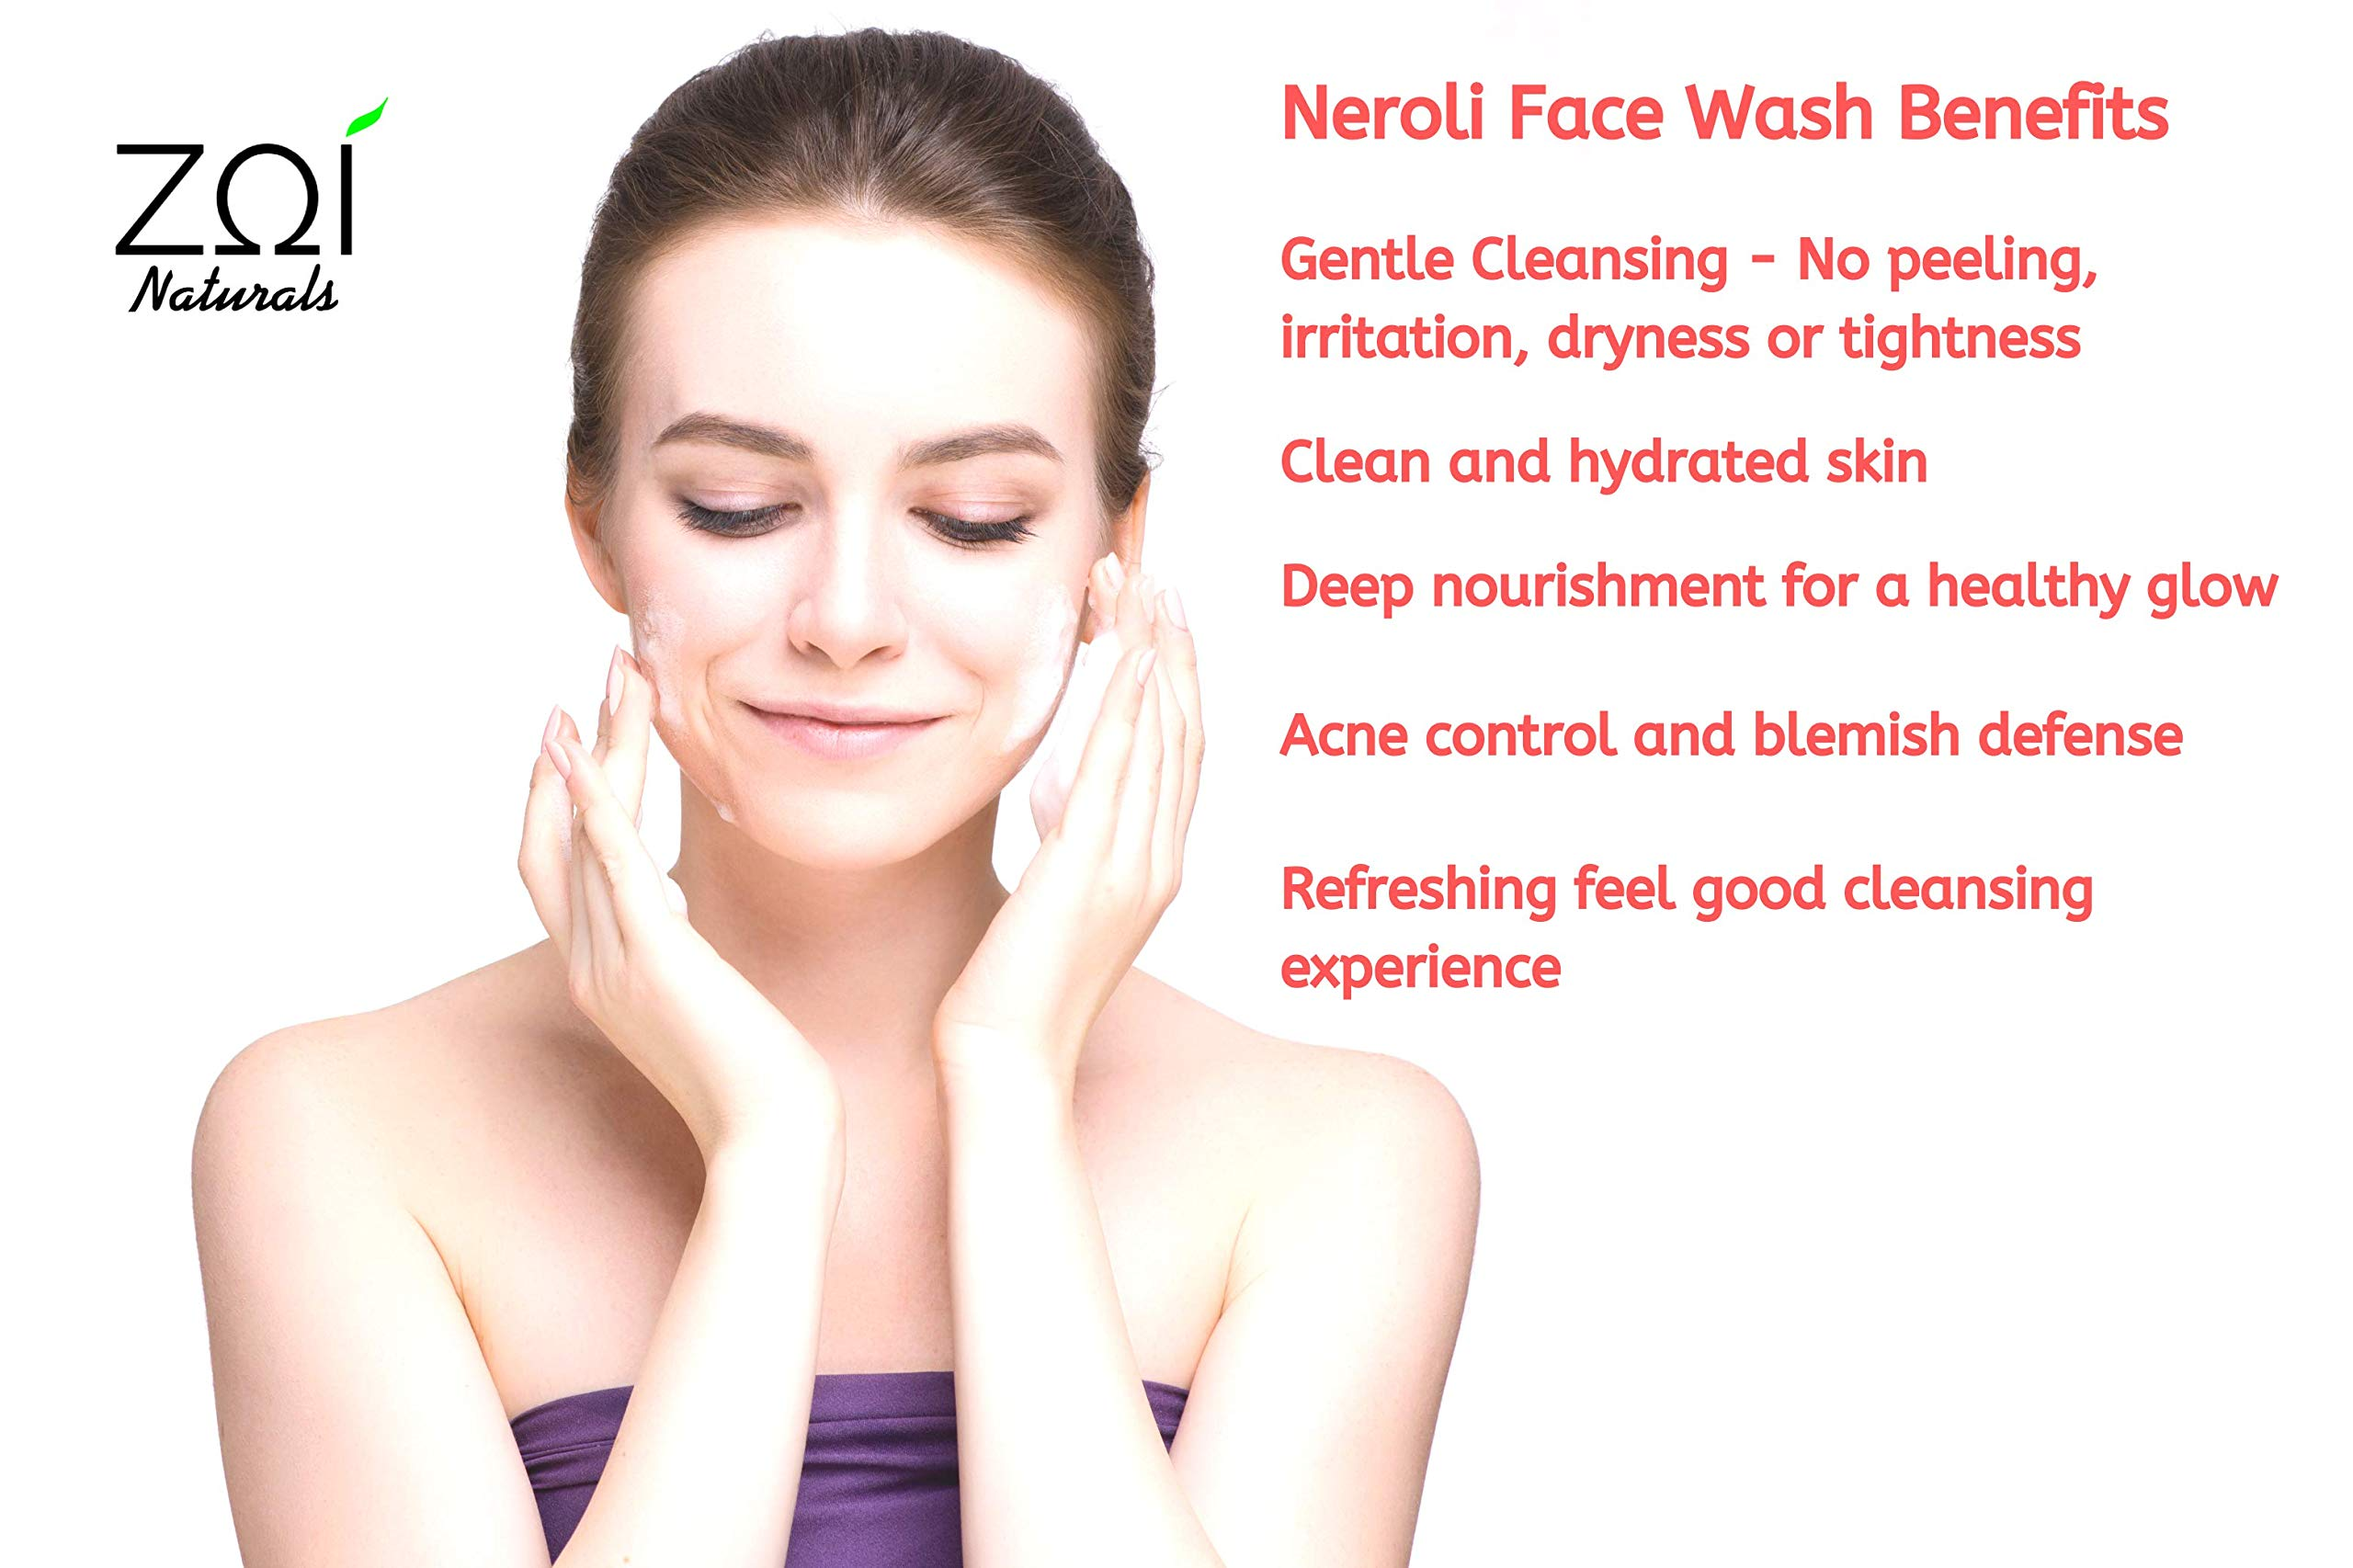 Natural Face Wash - Facial Cleanser with Neroli, Cleanses pores for Normal, Dry, Oily and Sensitive skin types, Non Drying, Face Wash for Women, Mens Face Wash, Acne Face Wash, Daily Use